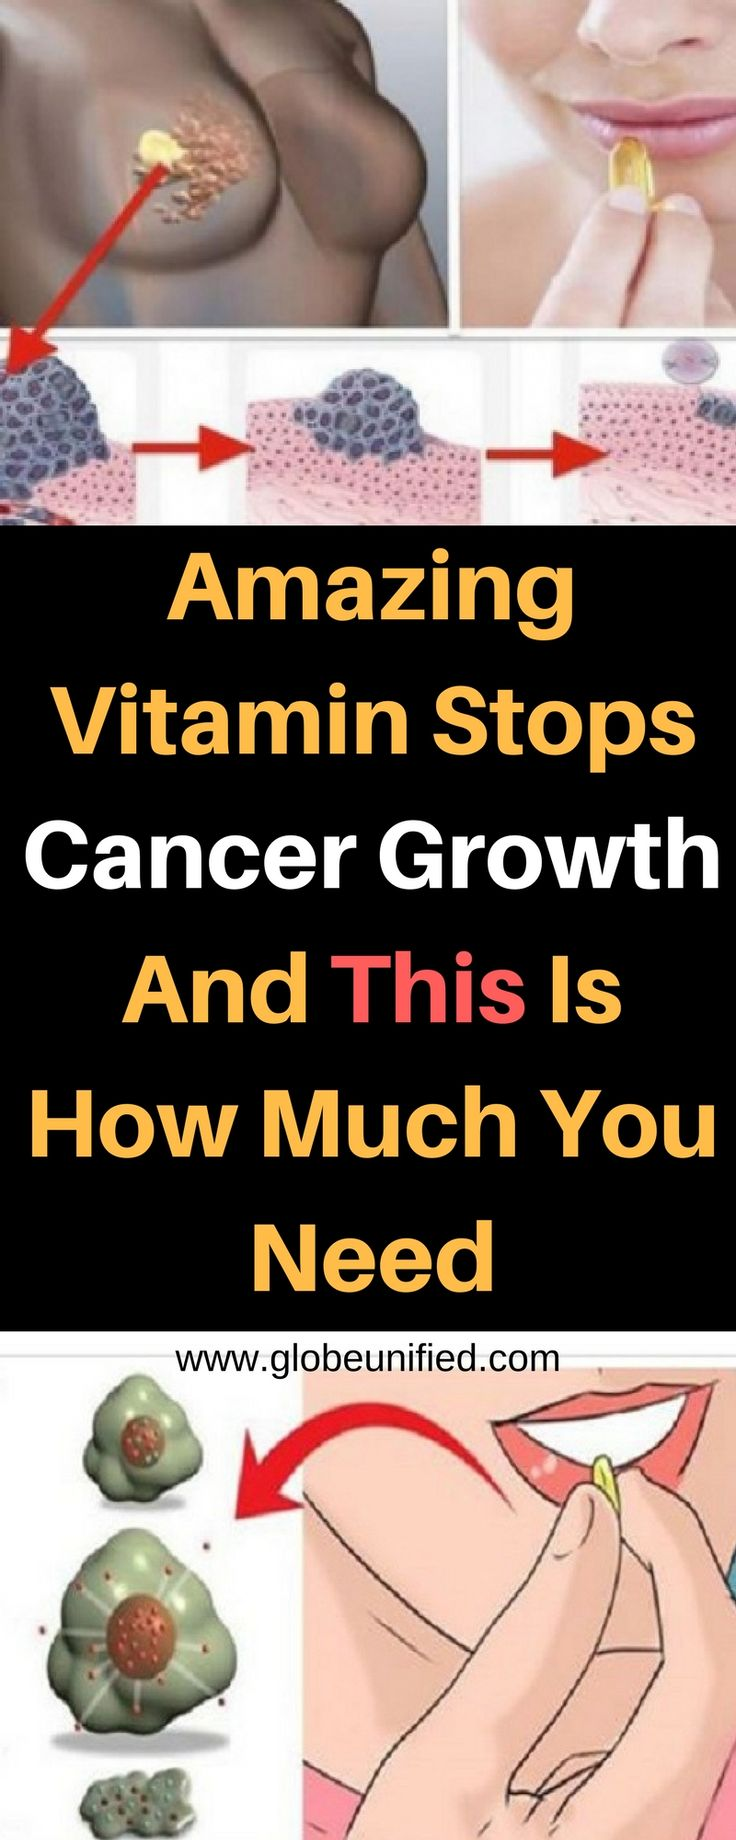 This vitamin protects us from colorectal, breast, and prostate cancer. #cancer #stopcancer #vitamin #vitamins #cancer #breastcancer #coloncancer #prostatecancer #rectalcancer